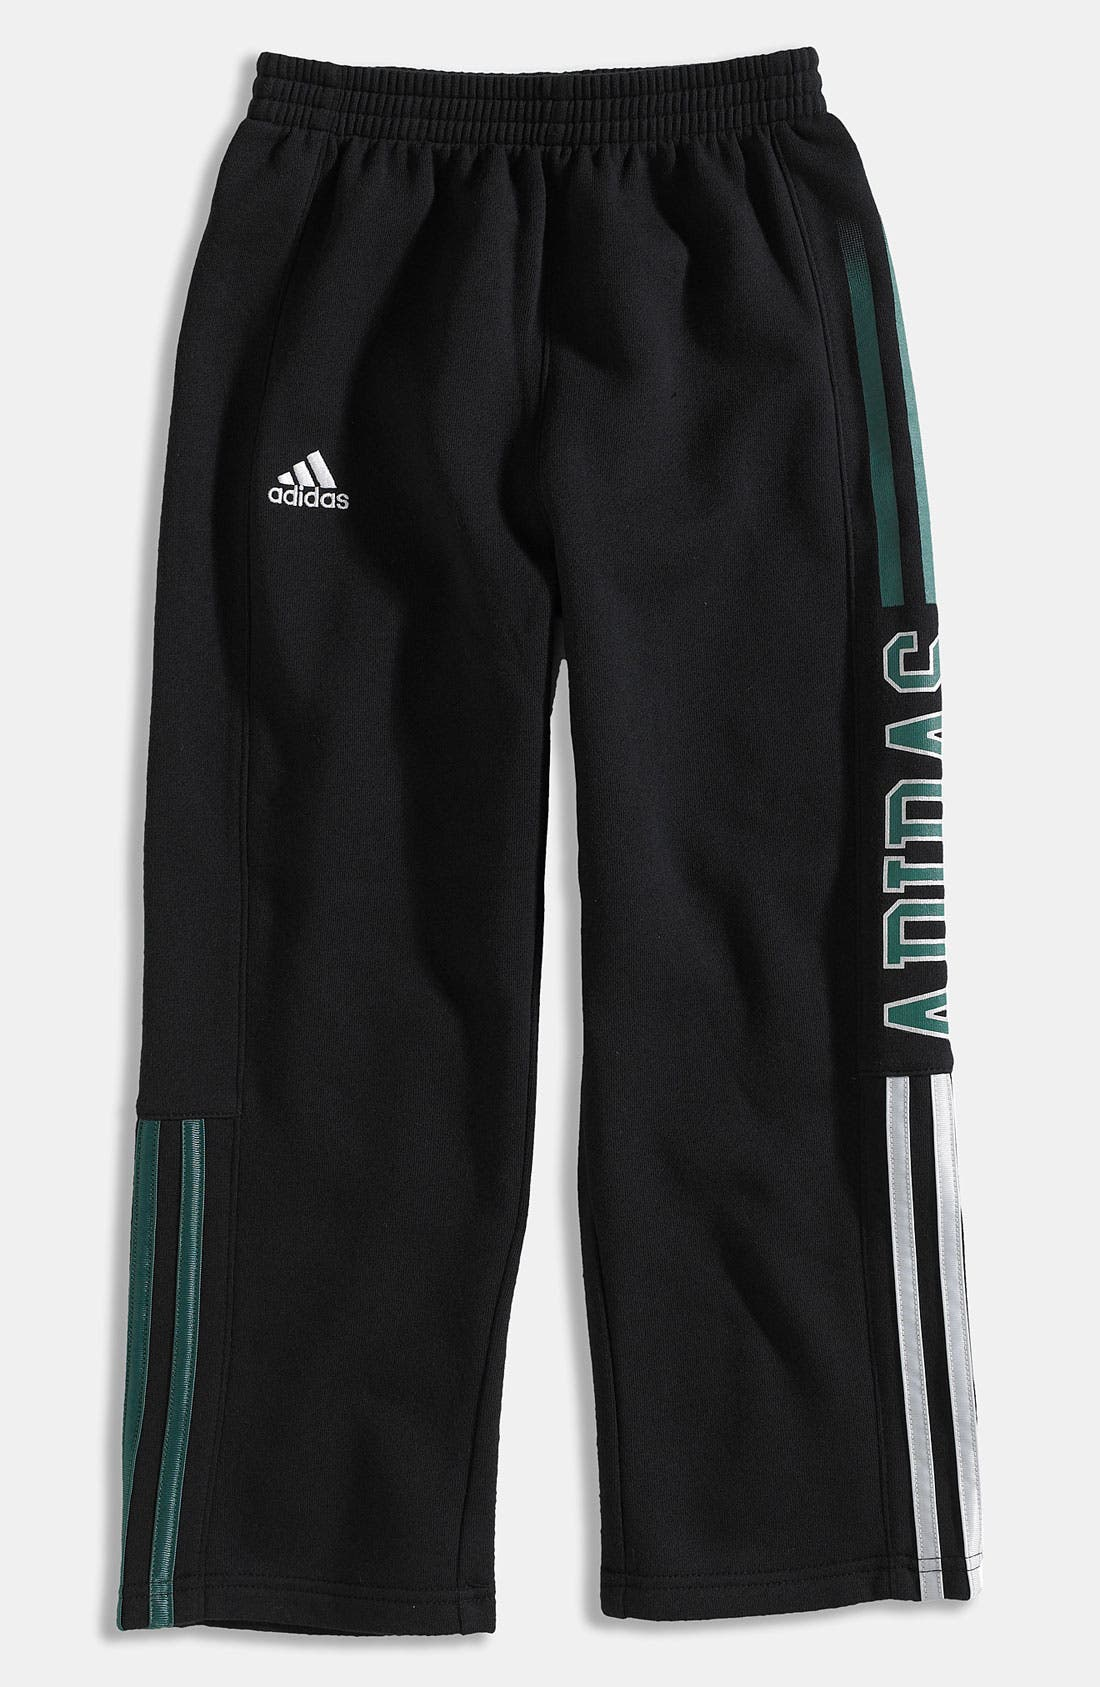 Main Image - adidas 'Action' Pants (Little Boys)